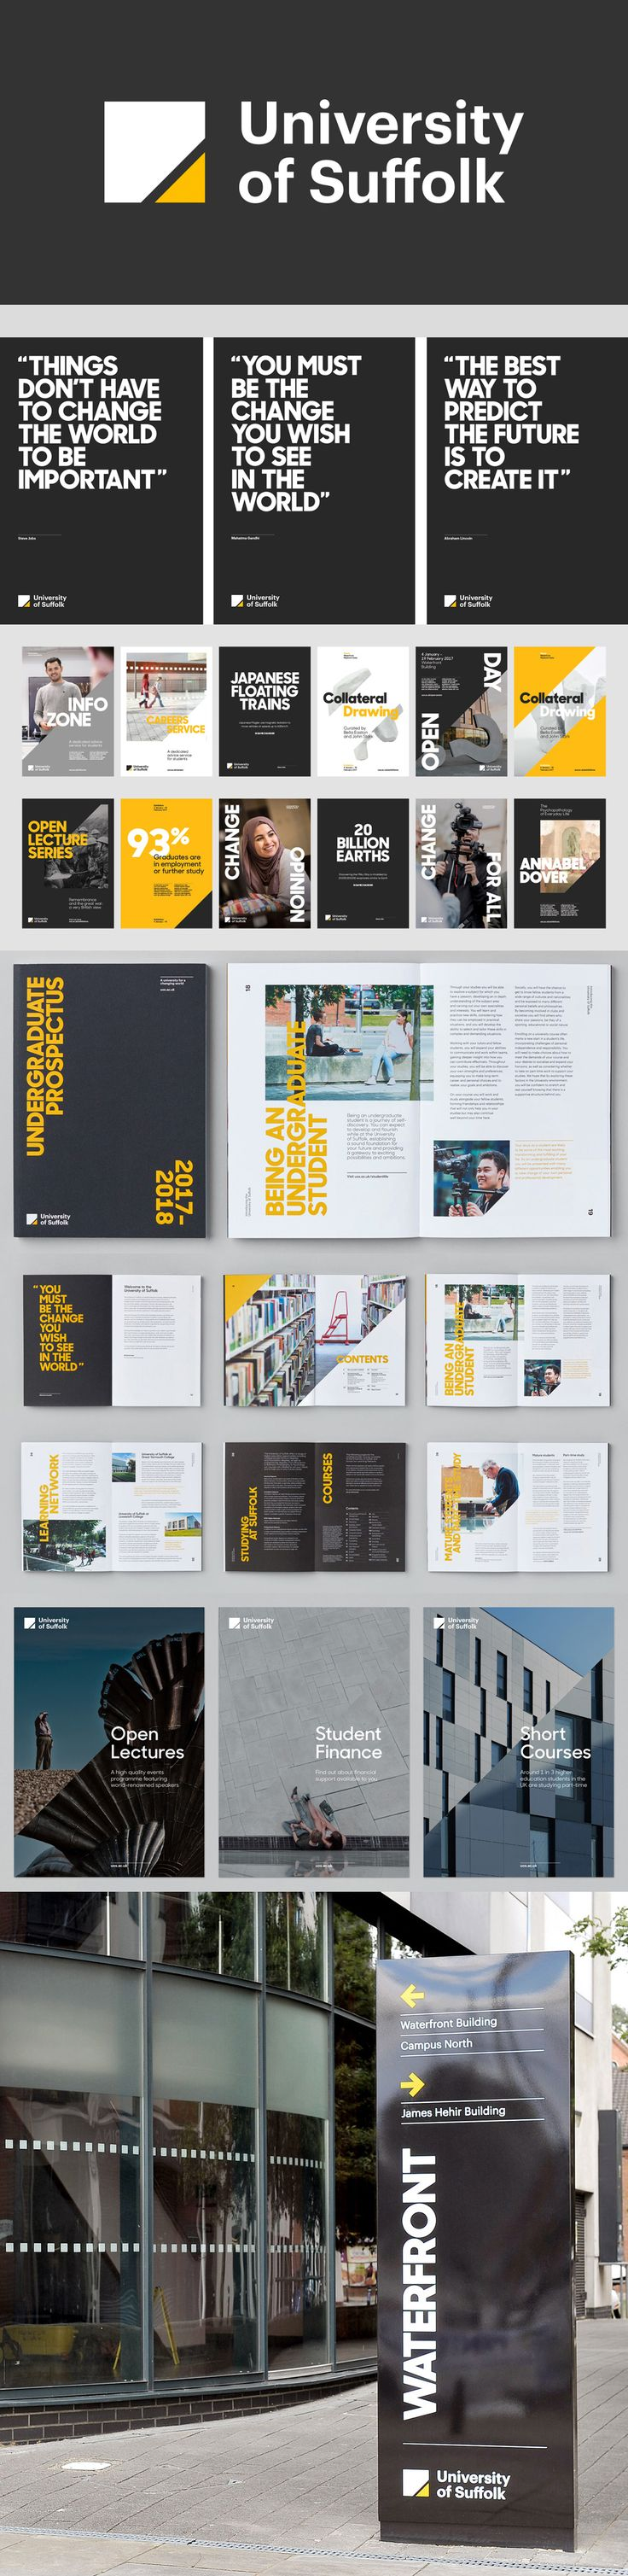 University of Suffolk branding editorial brochure layout typography color yellow